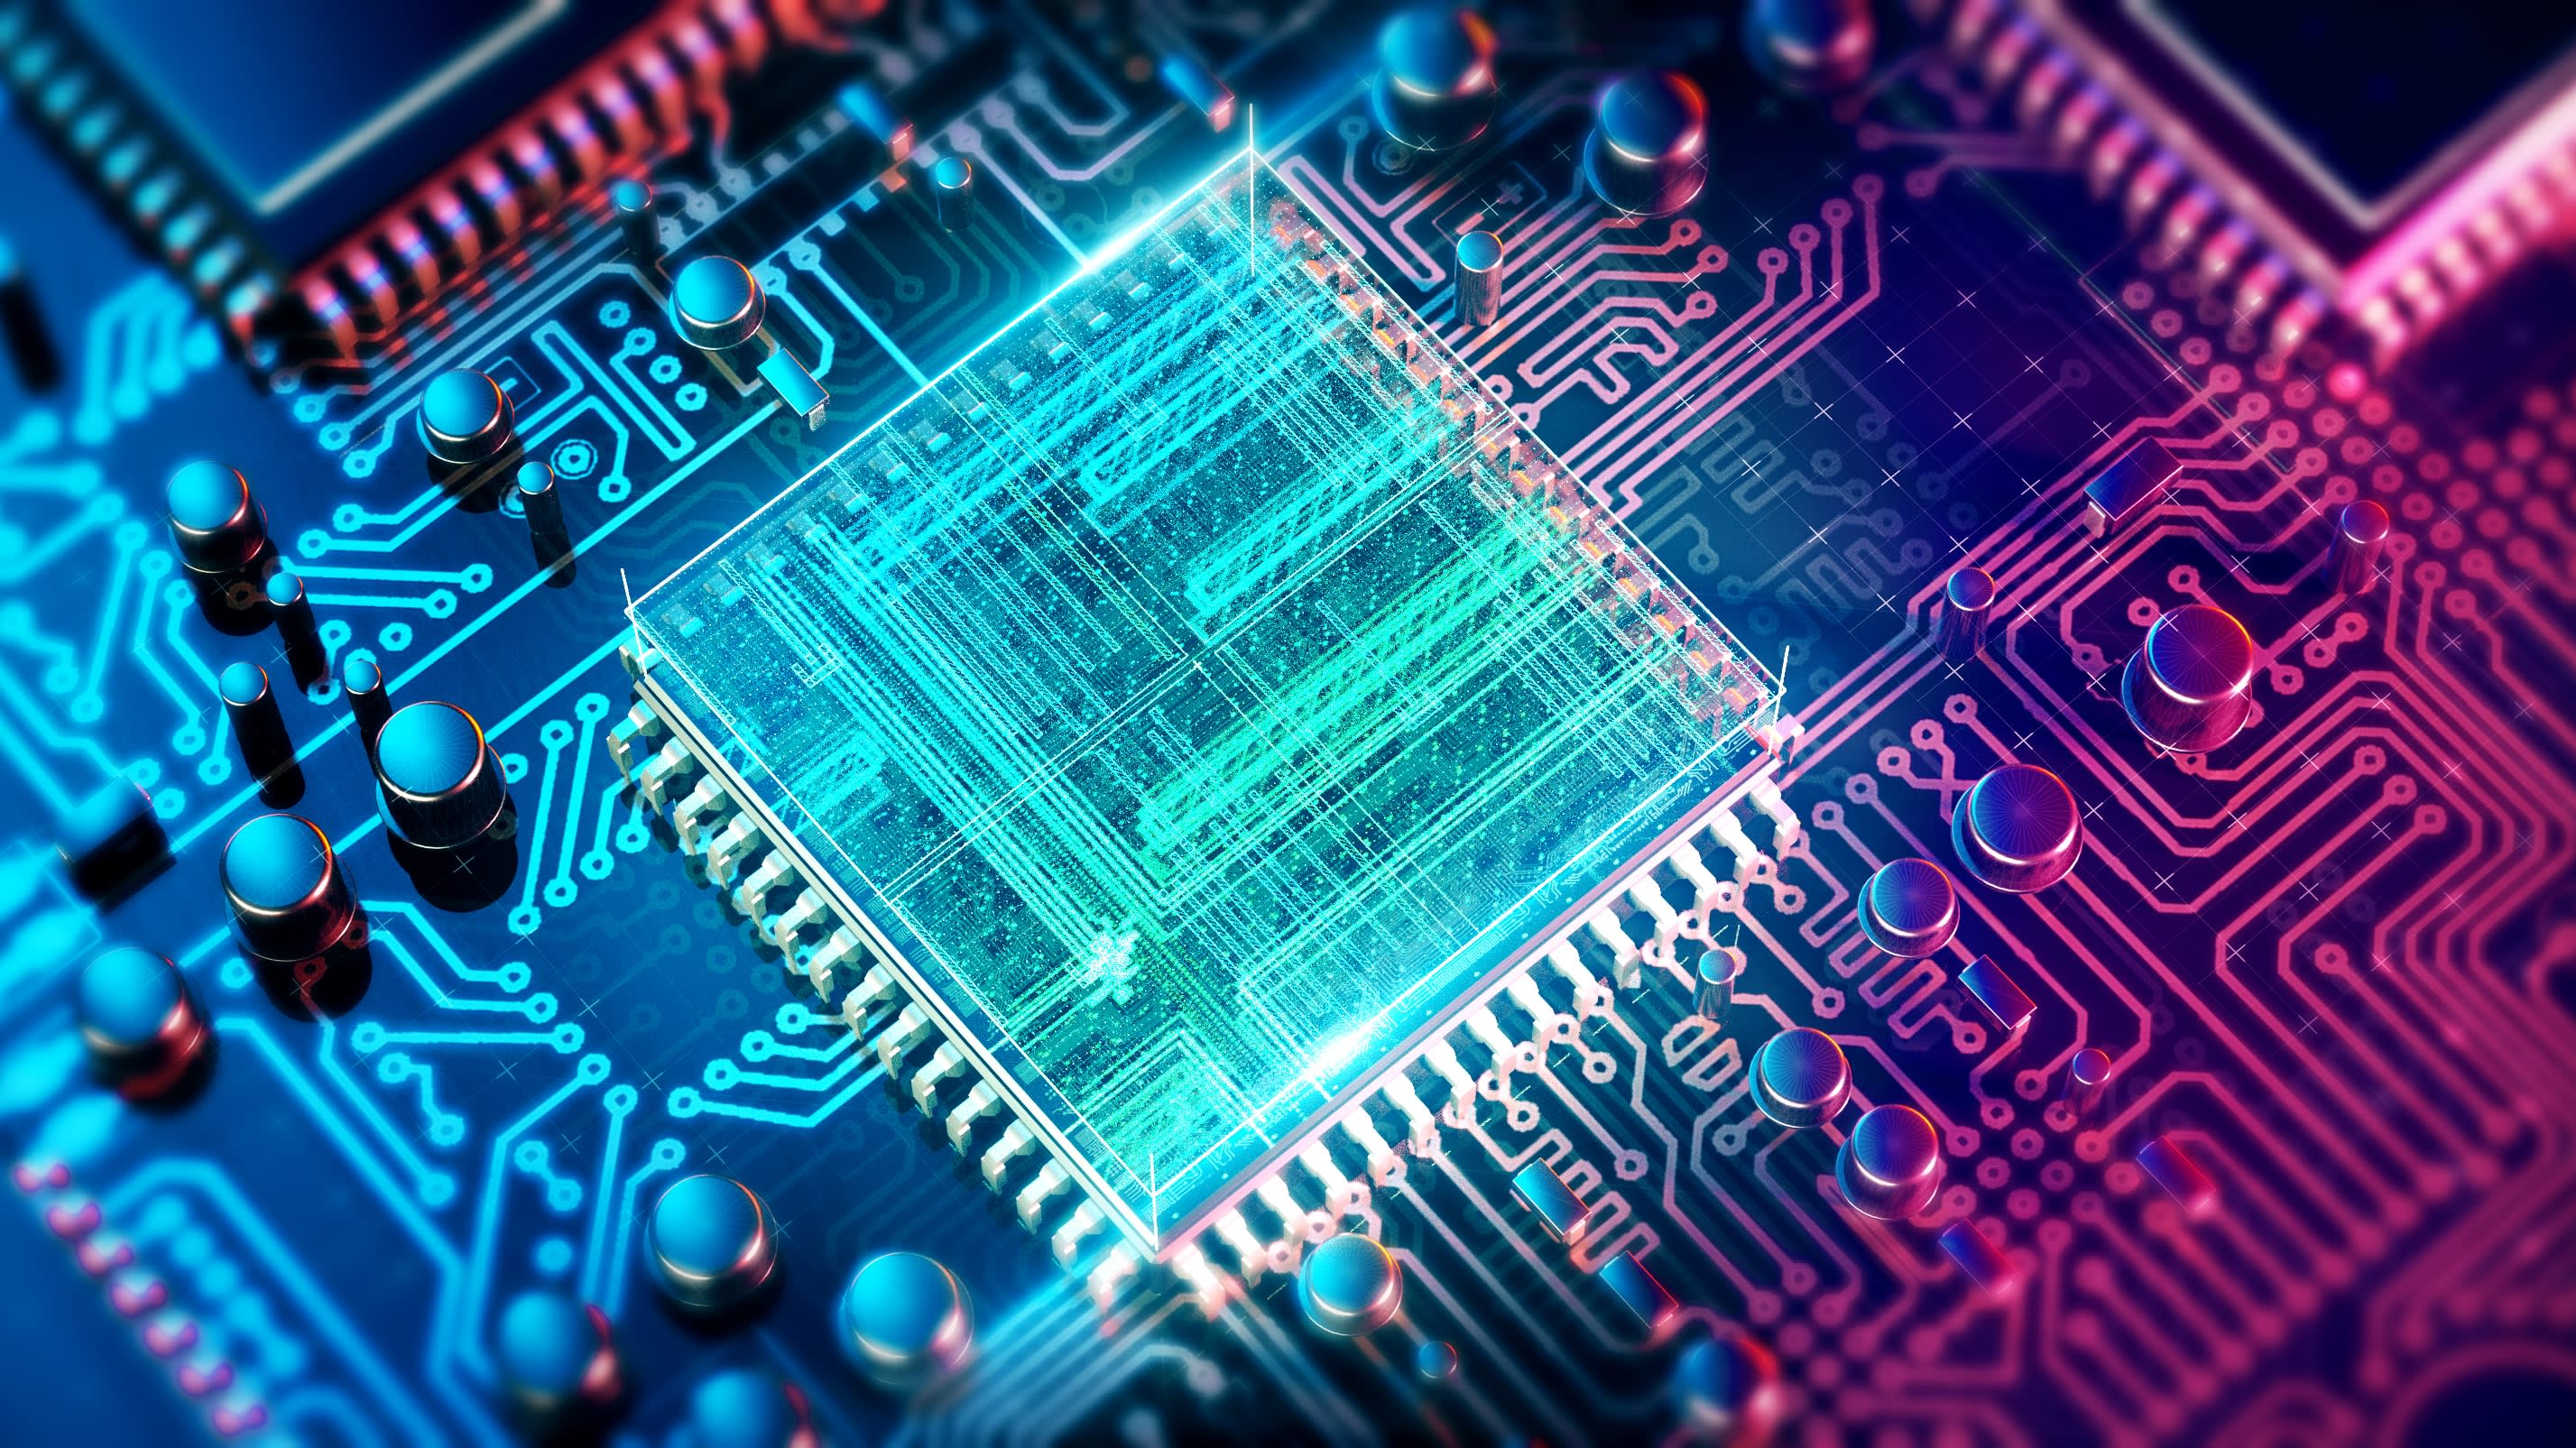 Top Rdas 2020.China S No 2 Player To Launch 5g Chip In 2020 To Rival